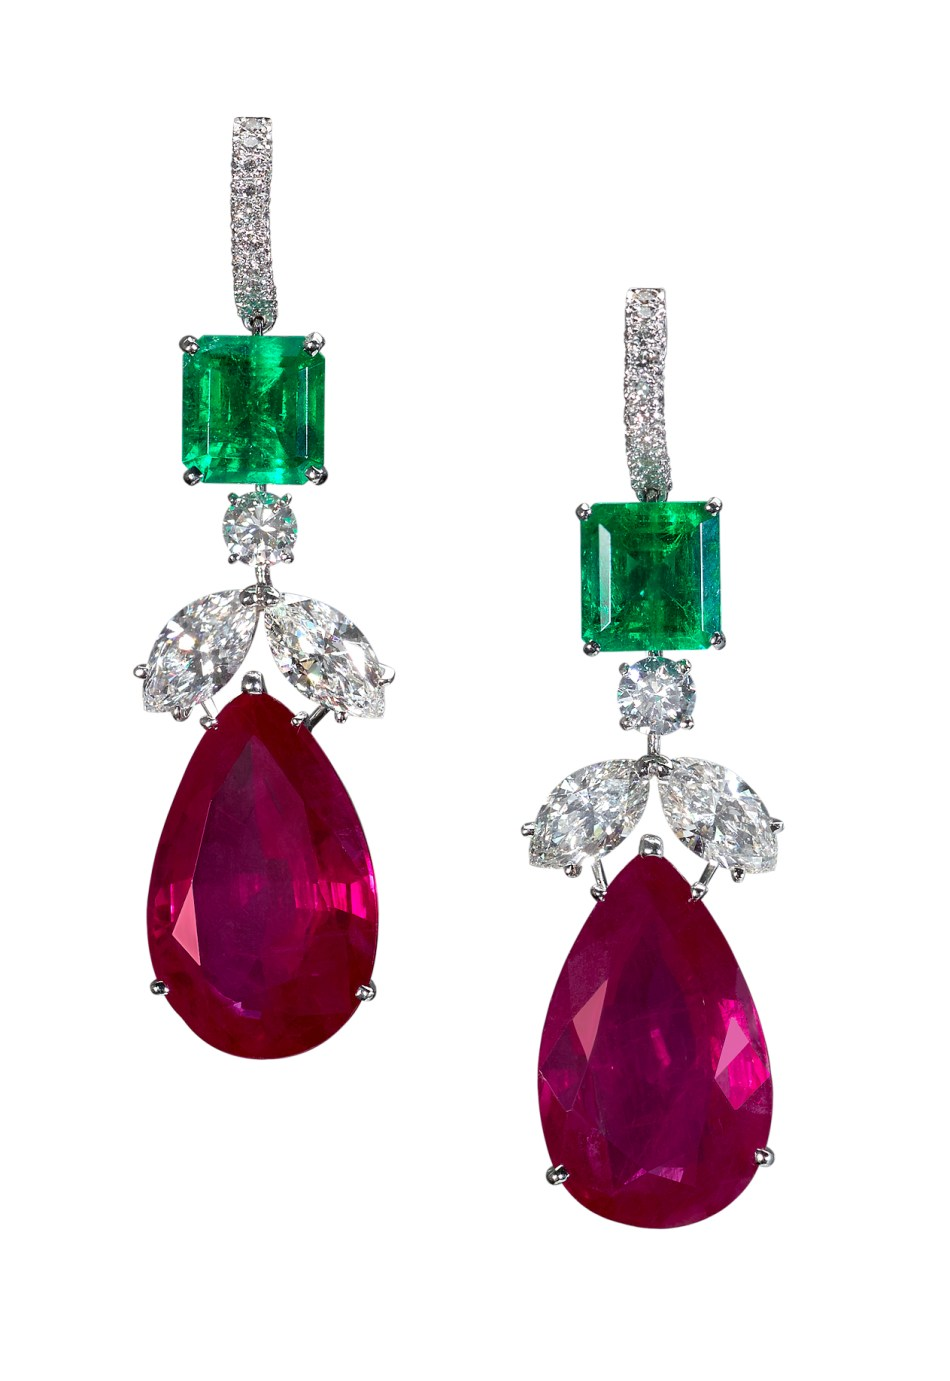 Moussaieff - Colombian emerald (6.88cts), Burma ruby (40.23cts) and diamond (5.25cts) earrings set in platinum